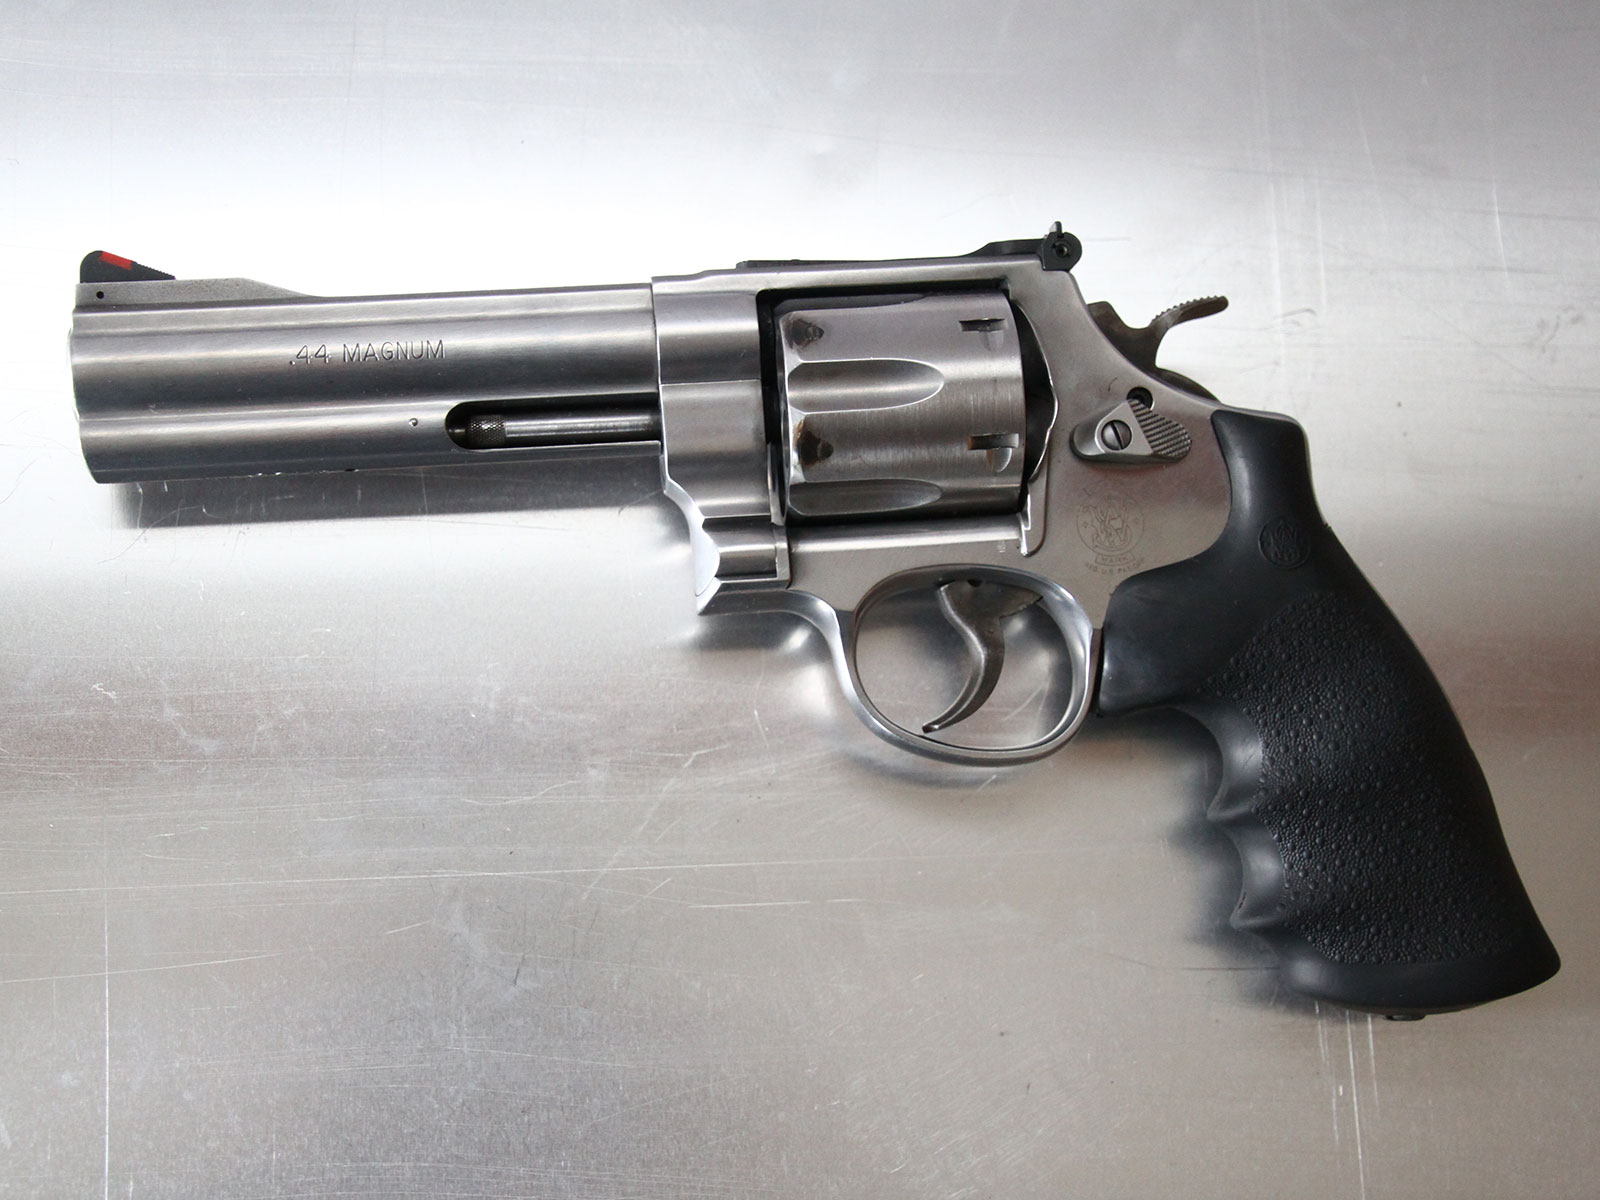 SH_Web_Wir_Waffen_Smith-Wesson-44-Magnum-1_1800x1200